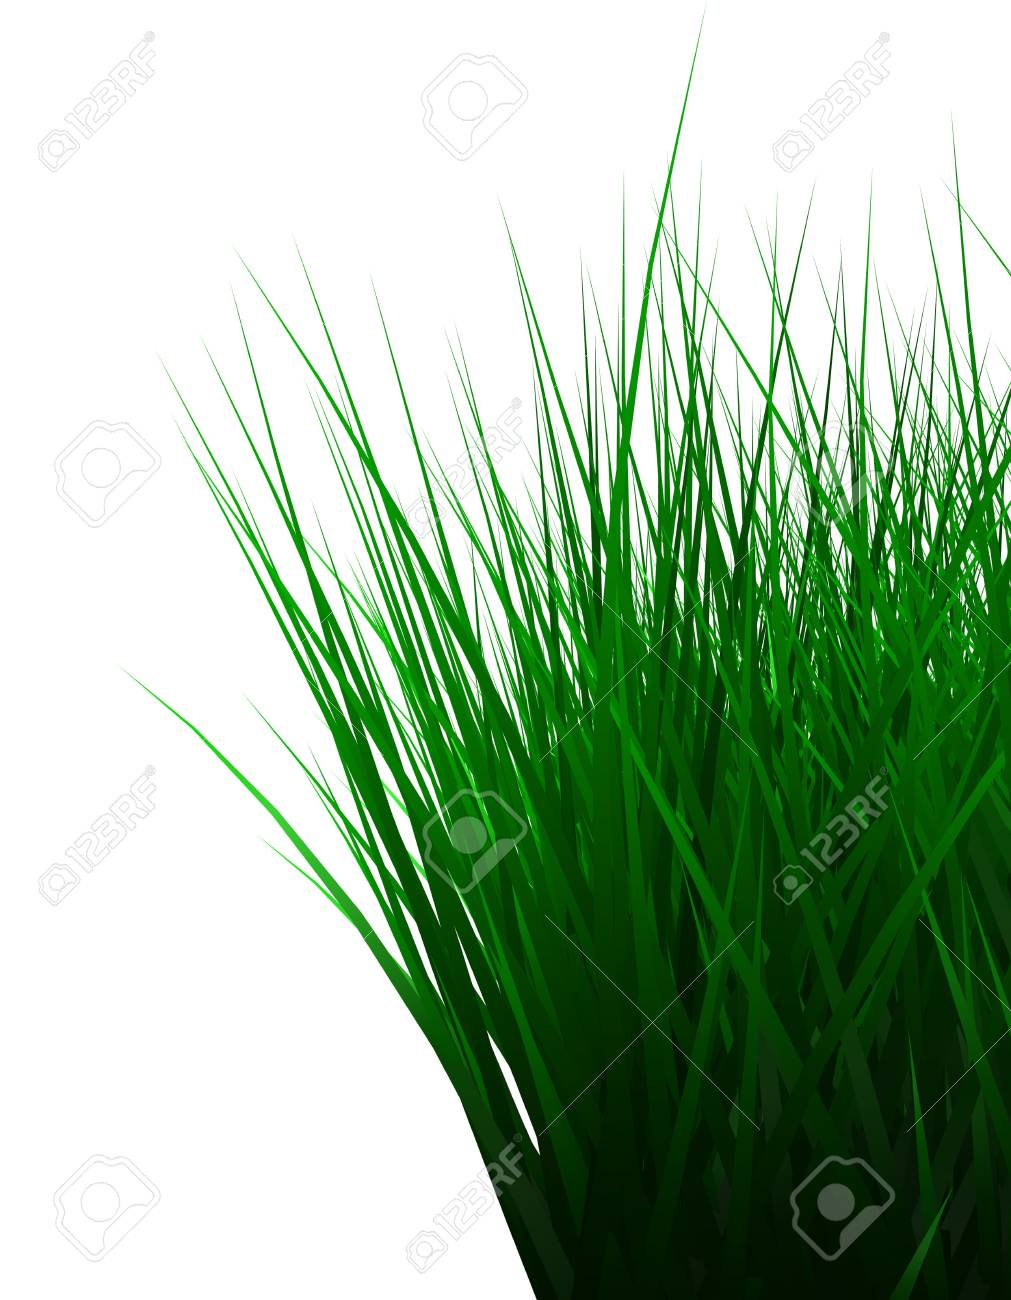 Green color grass illustration isolated on white Stock Illustration - 10652488